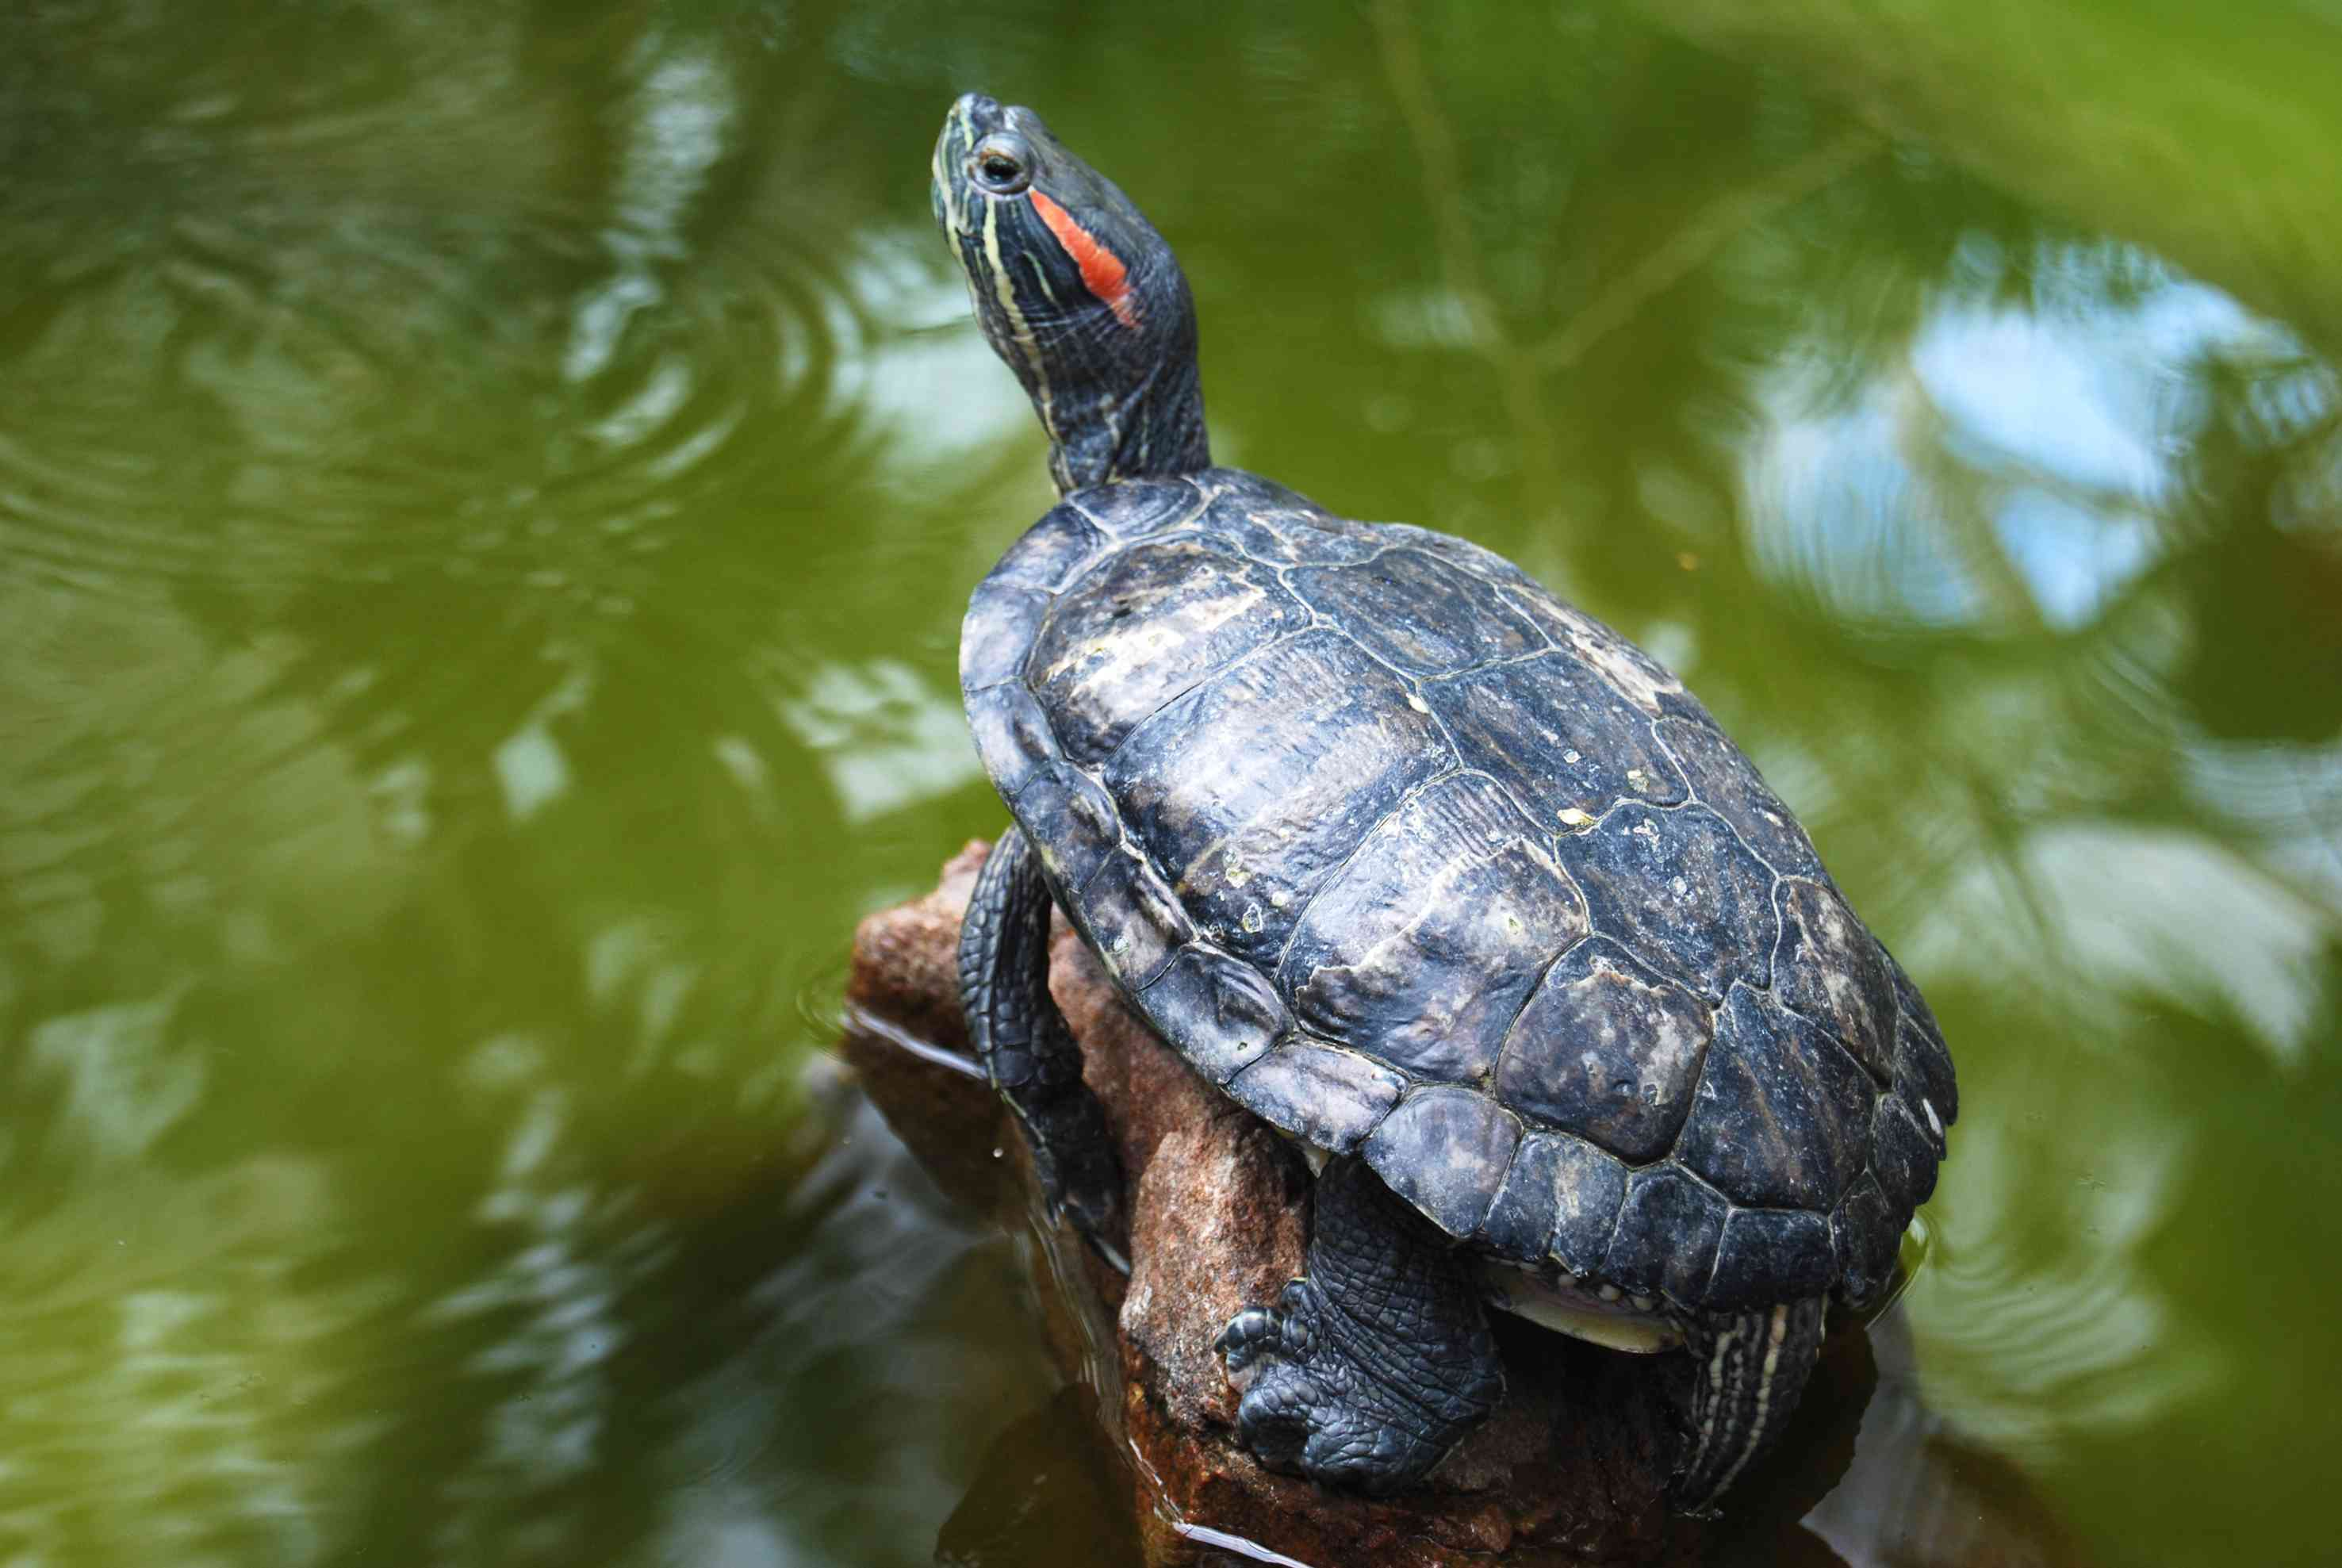 red-eared slider turtle perches on log above water